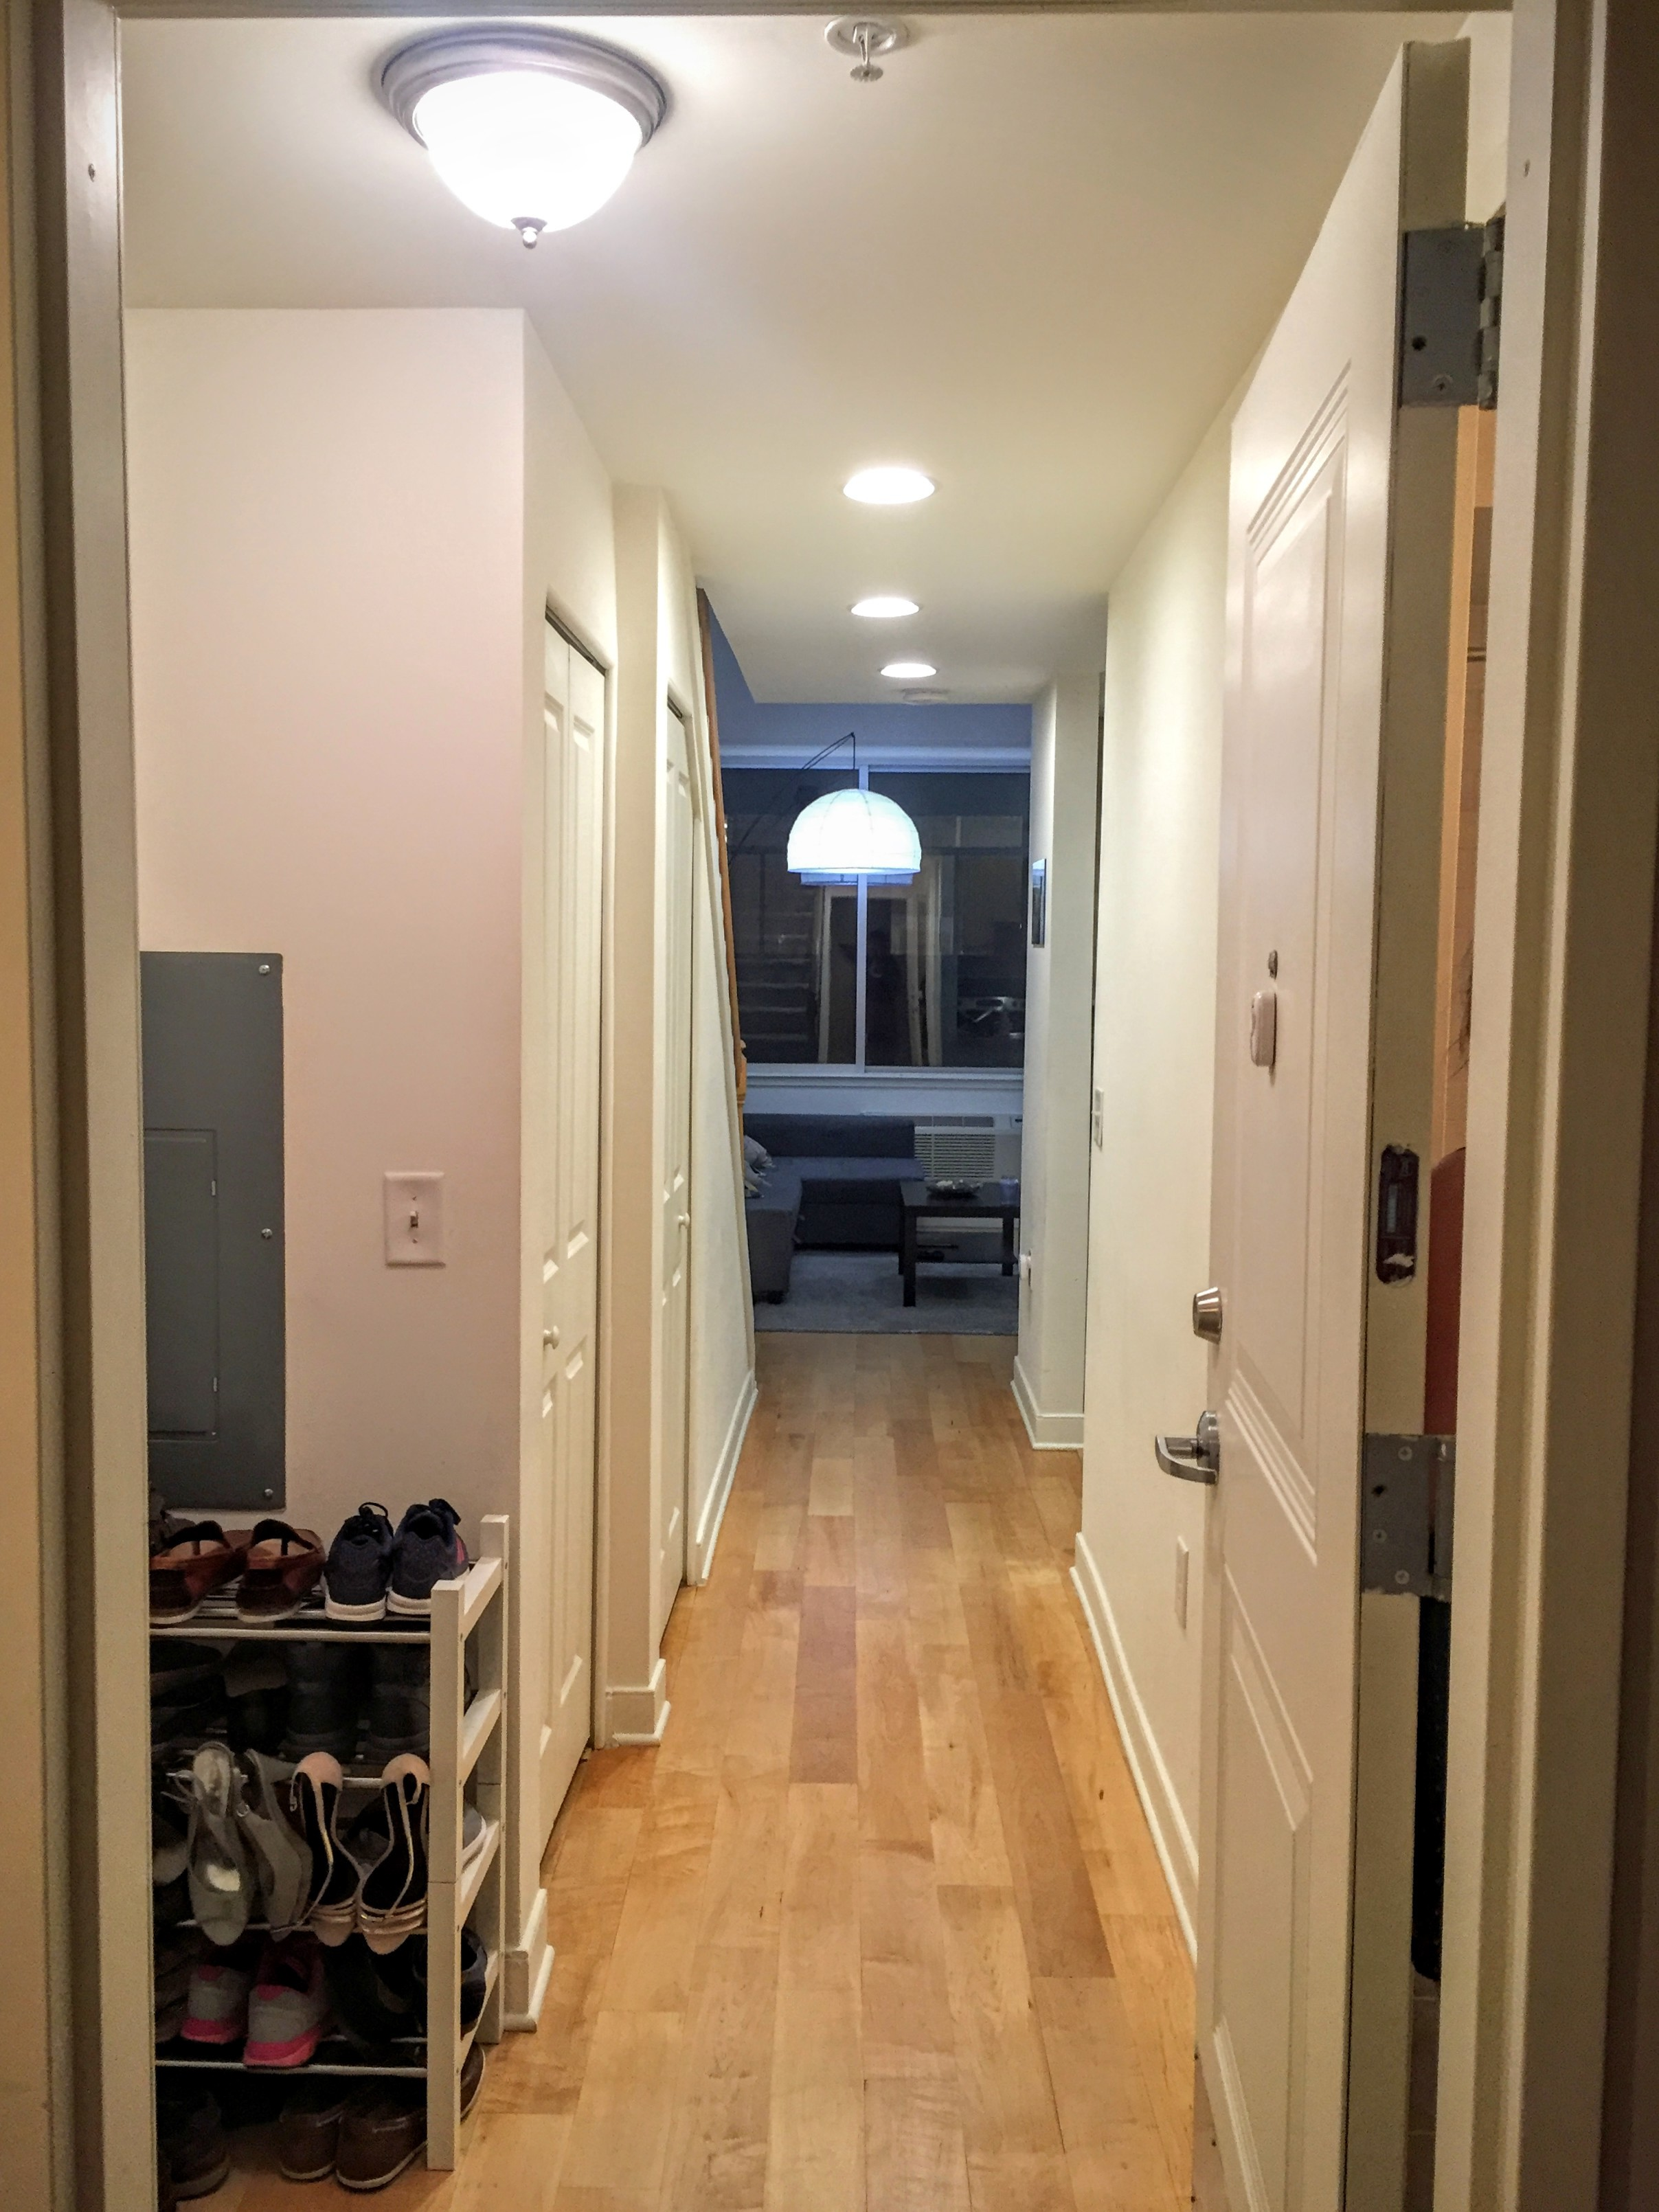 regent street jersey city nj 07302 1 bedroom apartment for rent